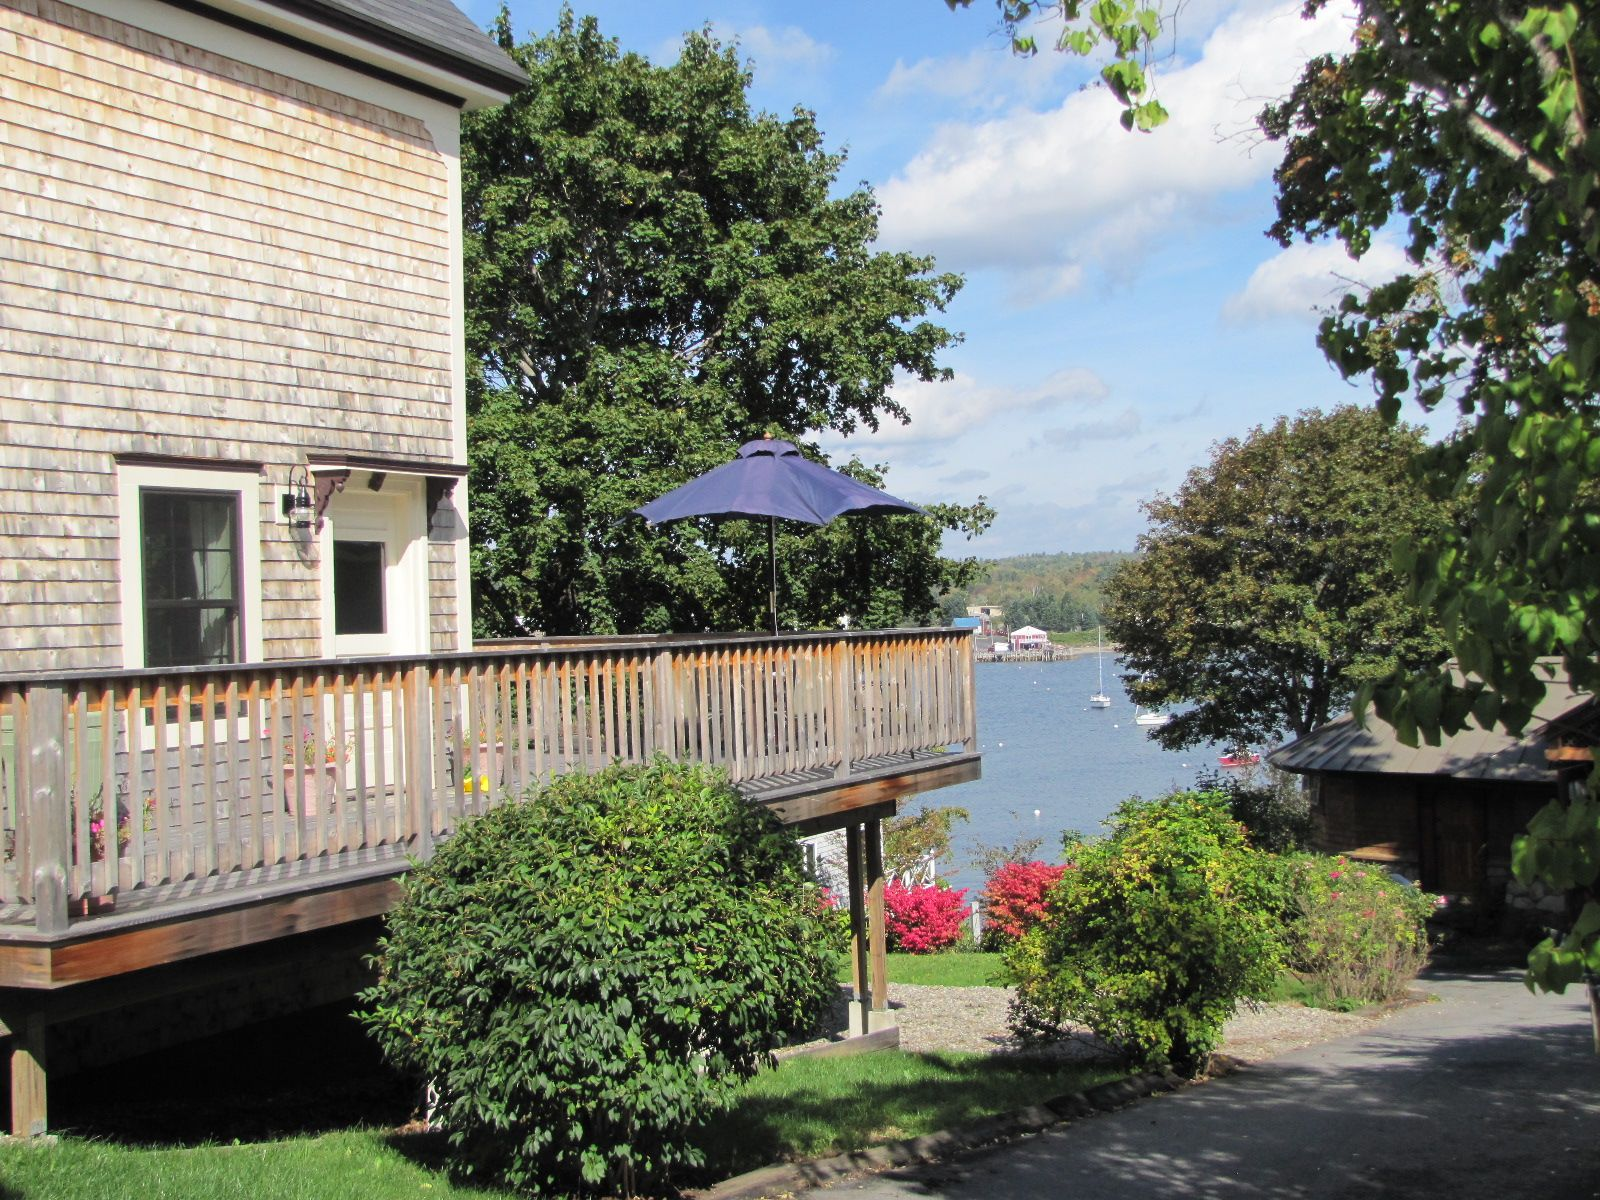 Real Estate Listing - Belfast Maine - Intown home with views of the harbor in Belfast, Maine